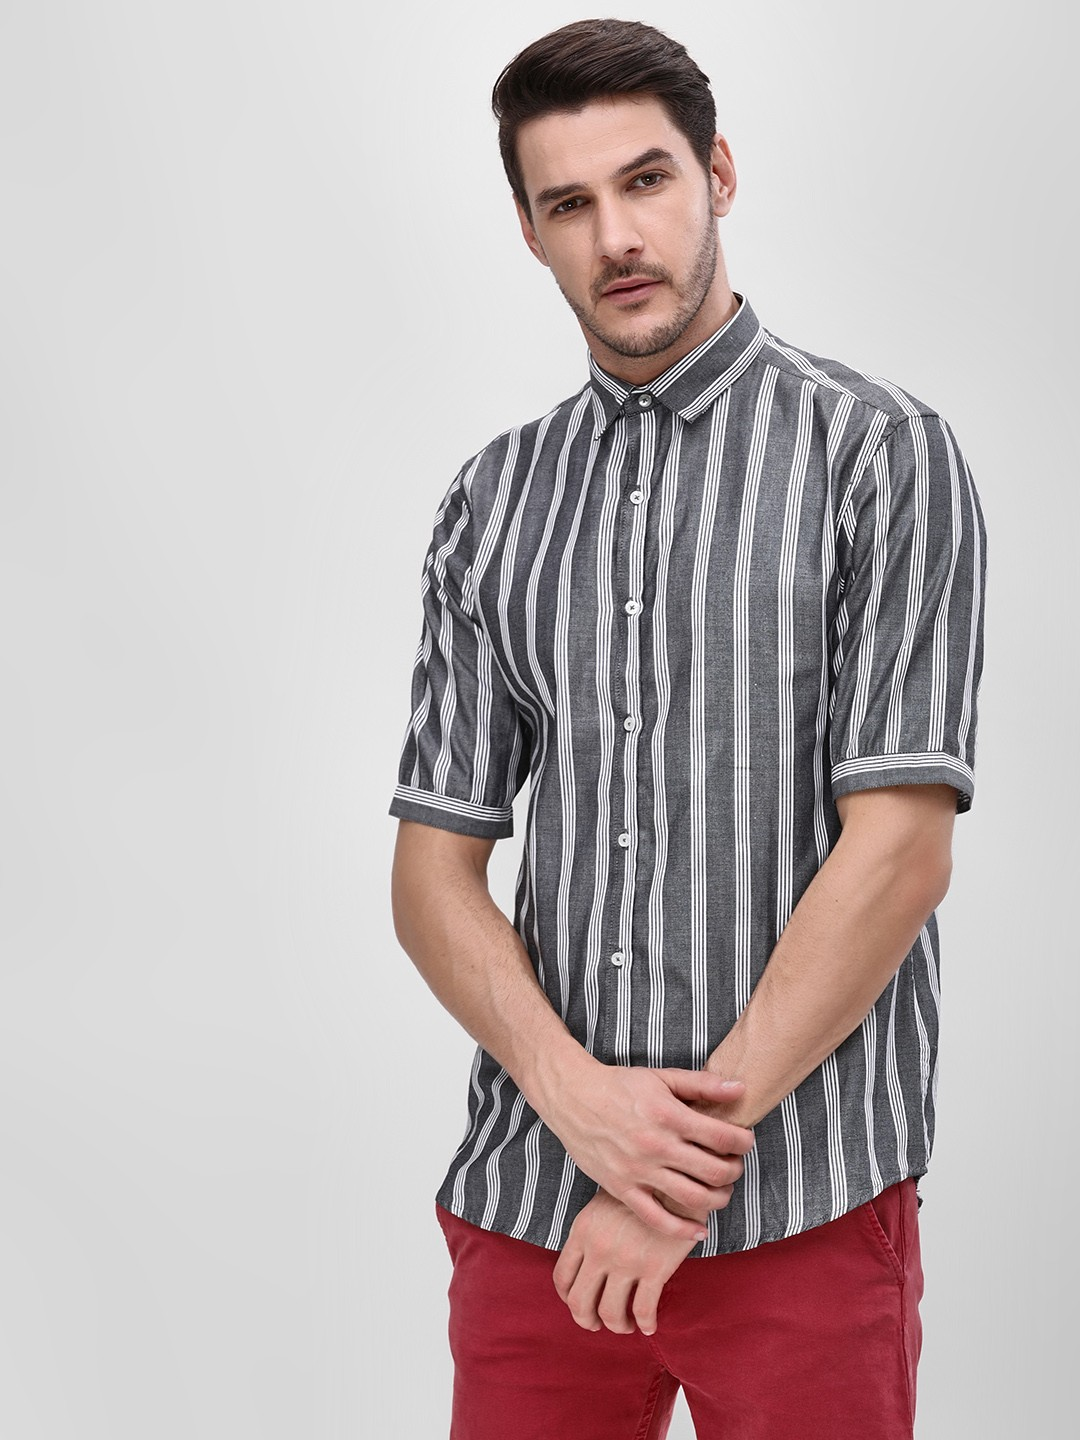 Mr Button Grey Vertical Striped Shirt 1